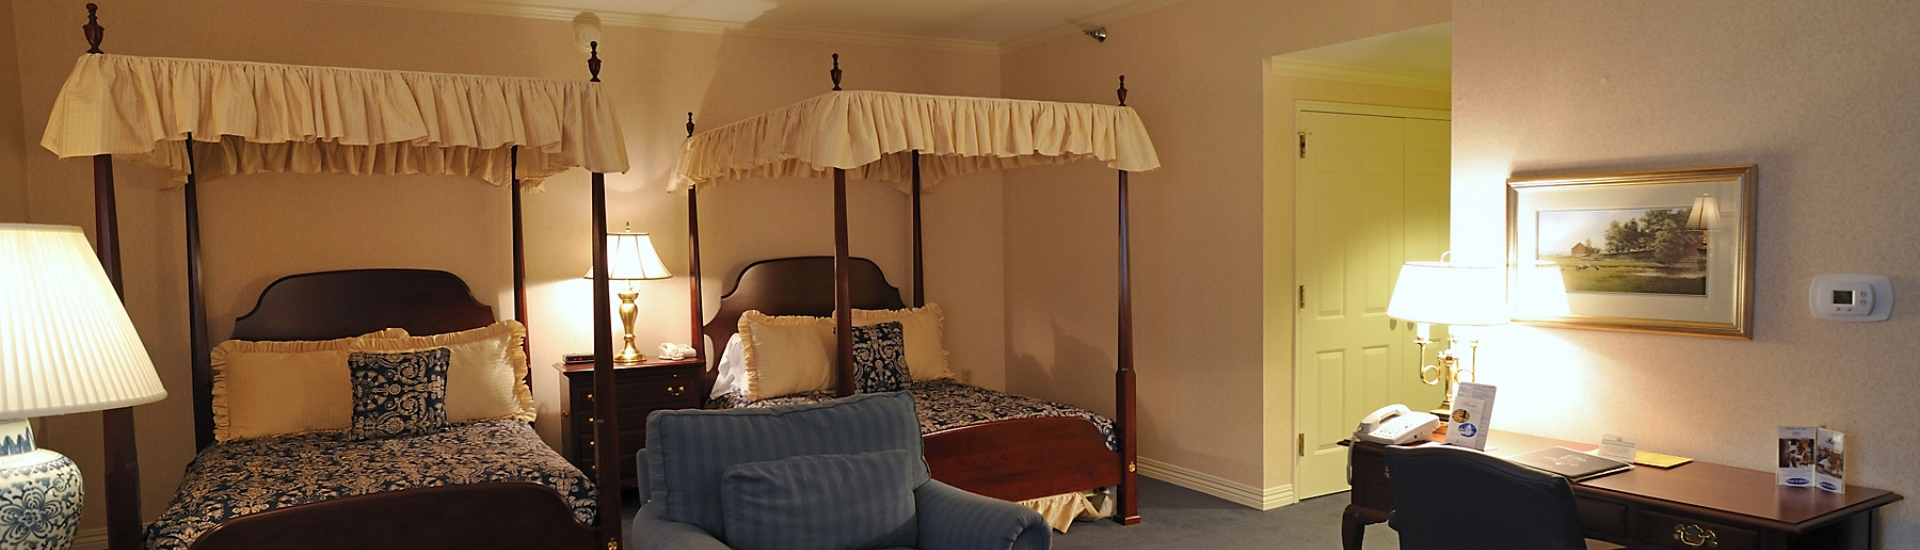 Deluxe Double canopy bed area